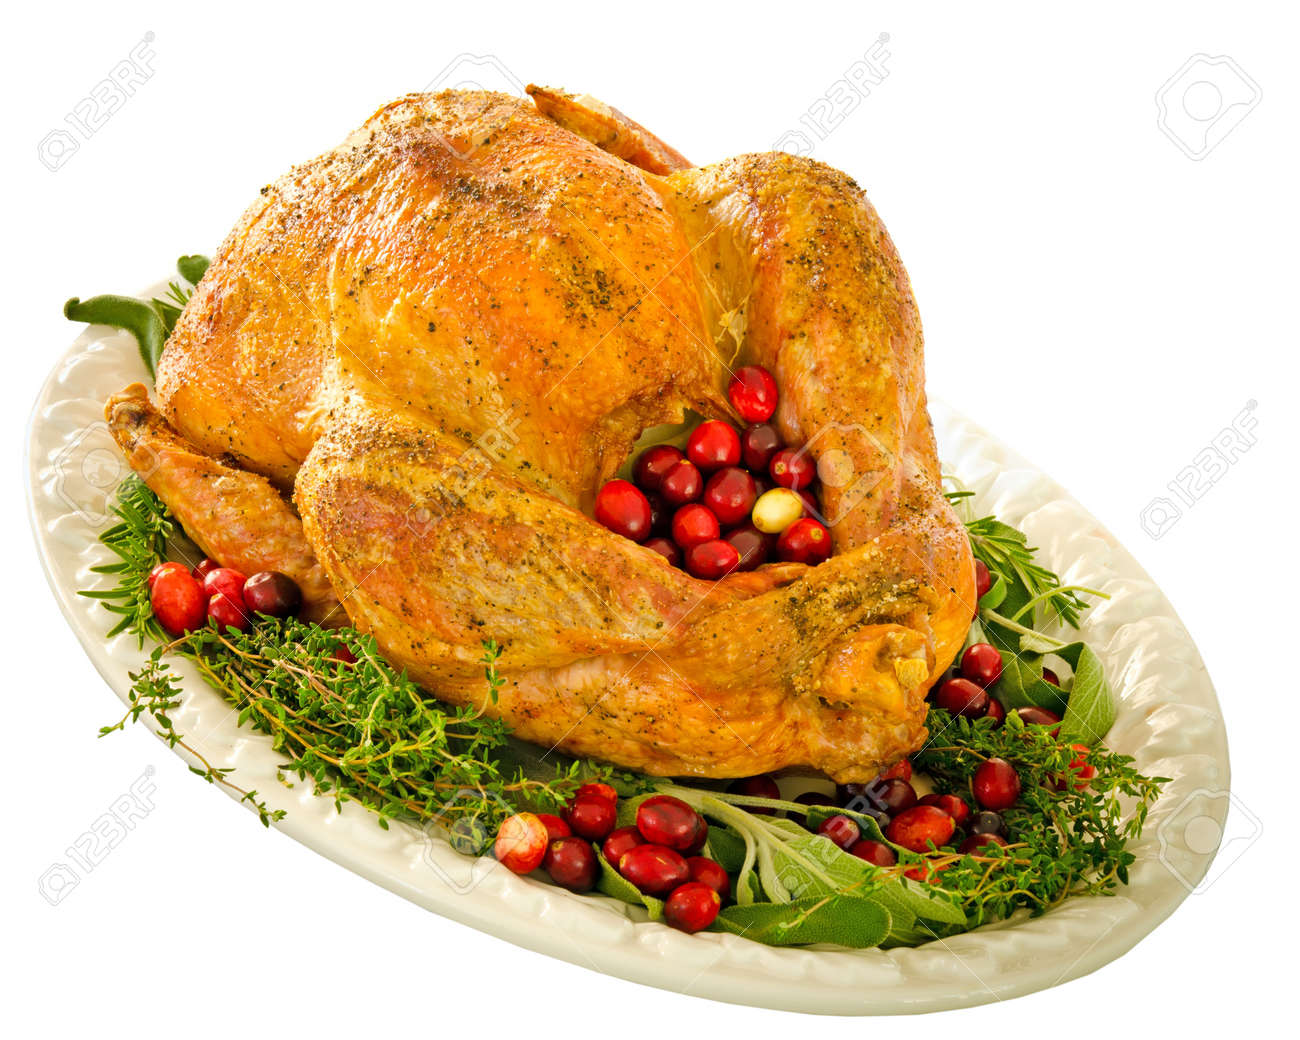 Roasted turkey stuffed with cranberries and herbs for Thanksgiving or Christmas dinner isolated on white Stock Photo - 11519062